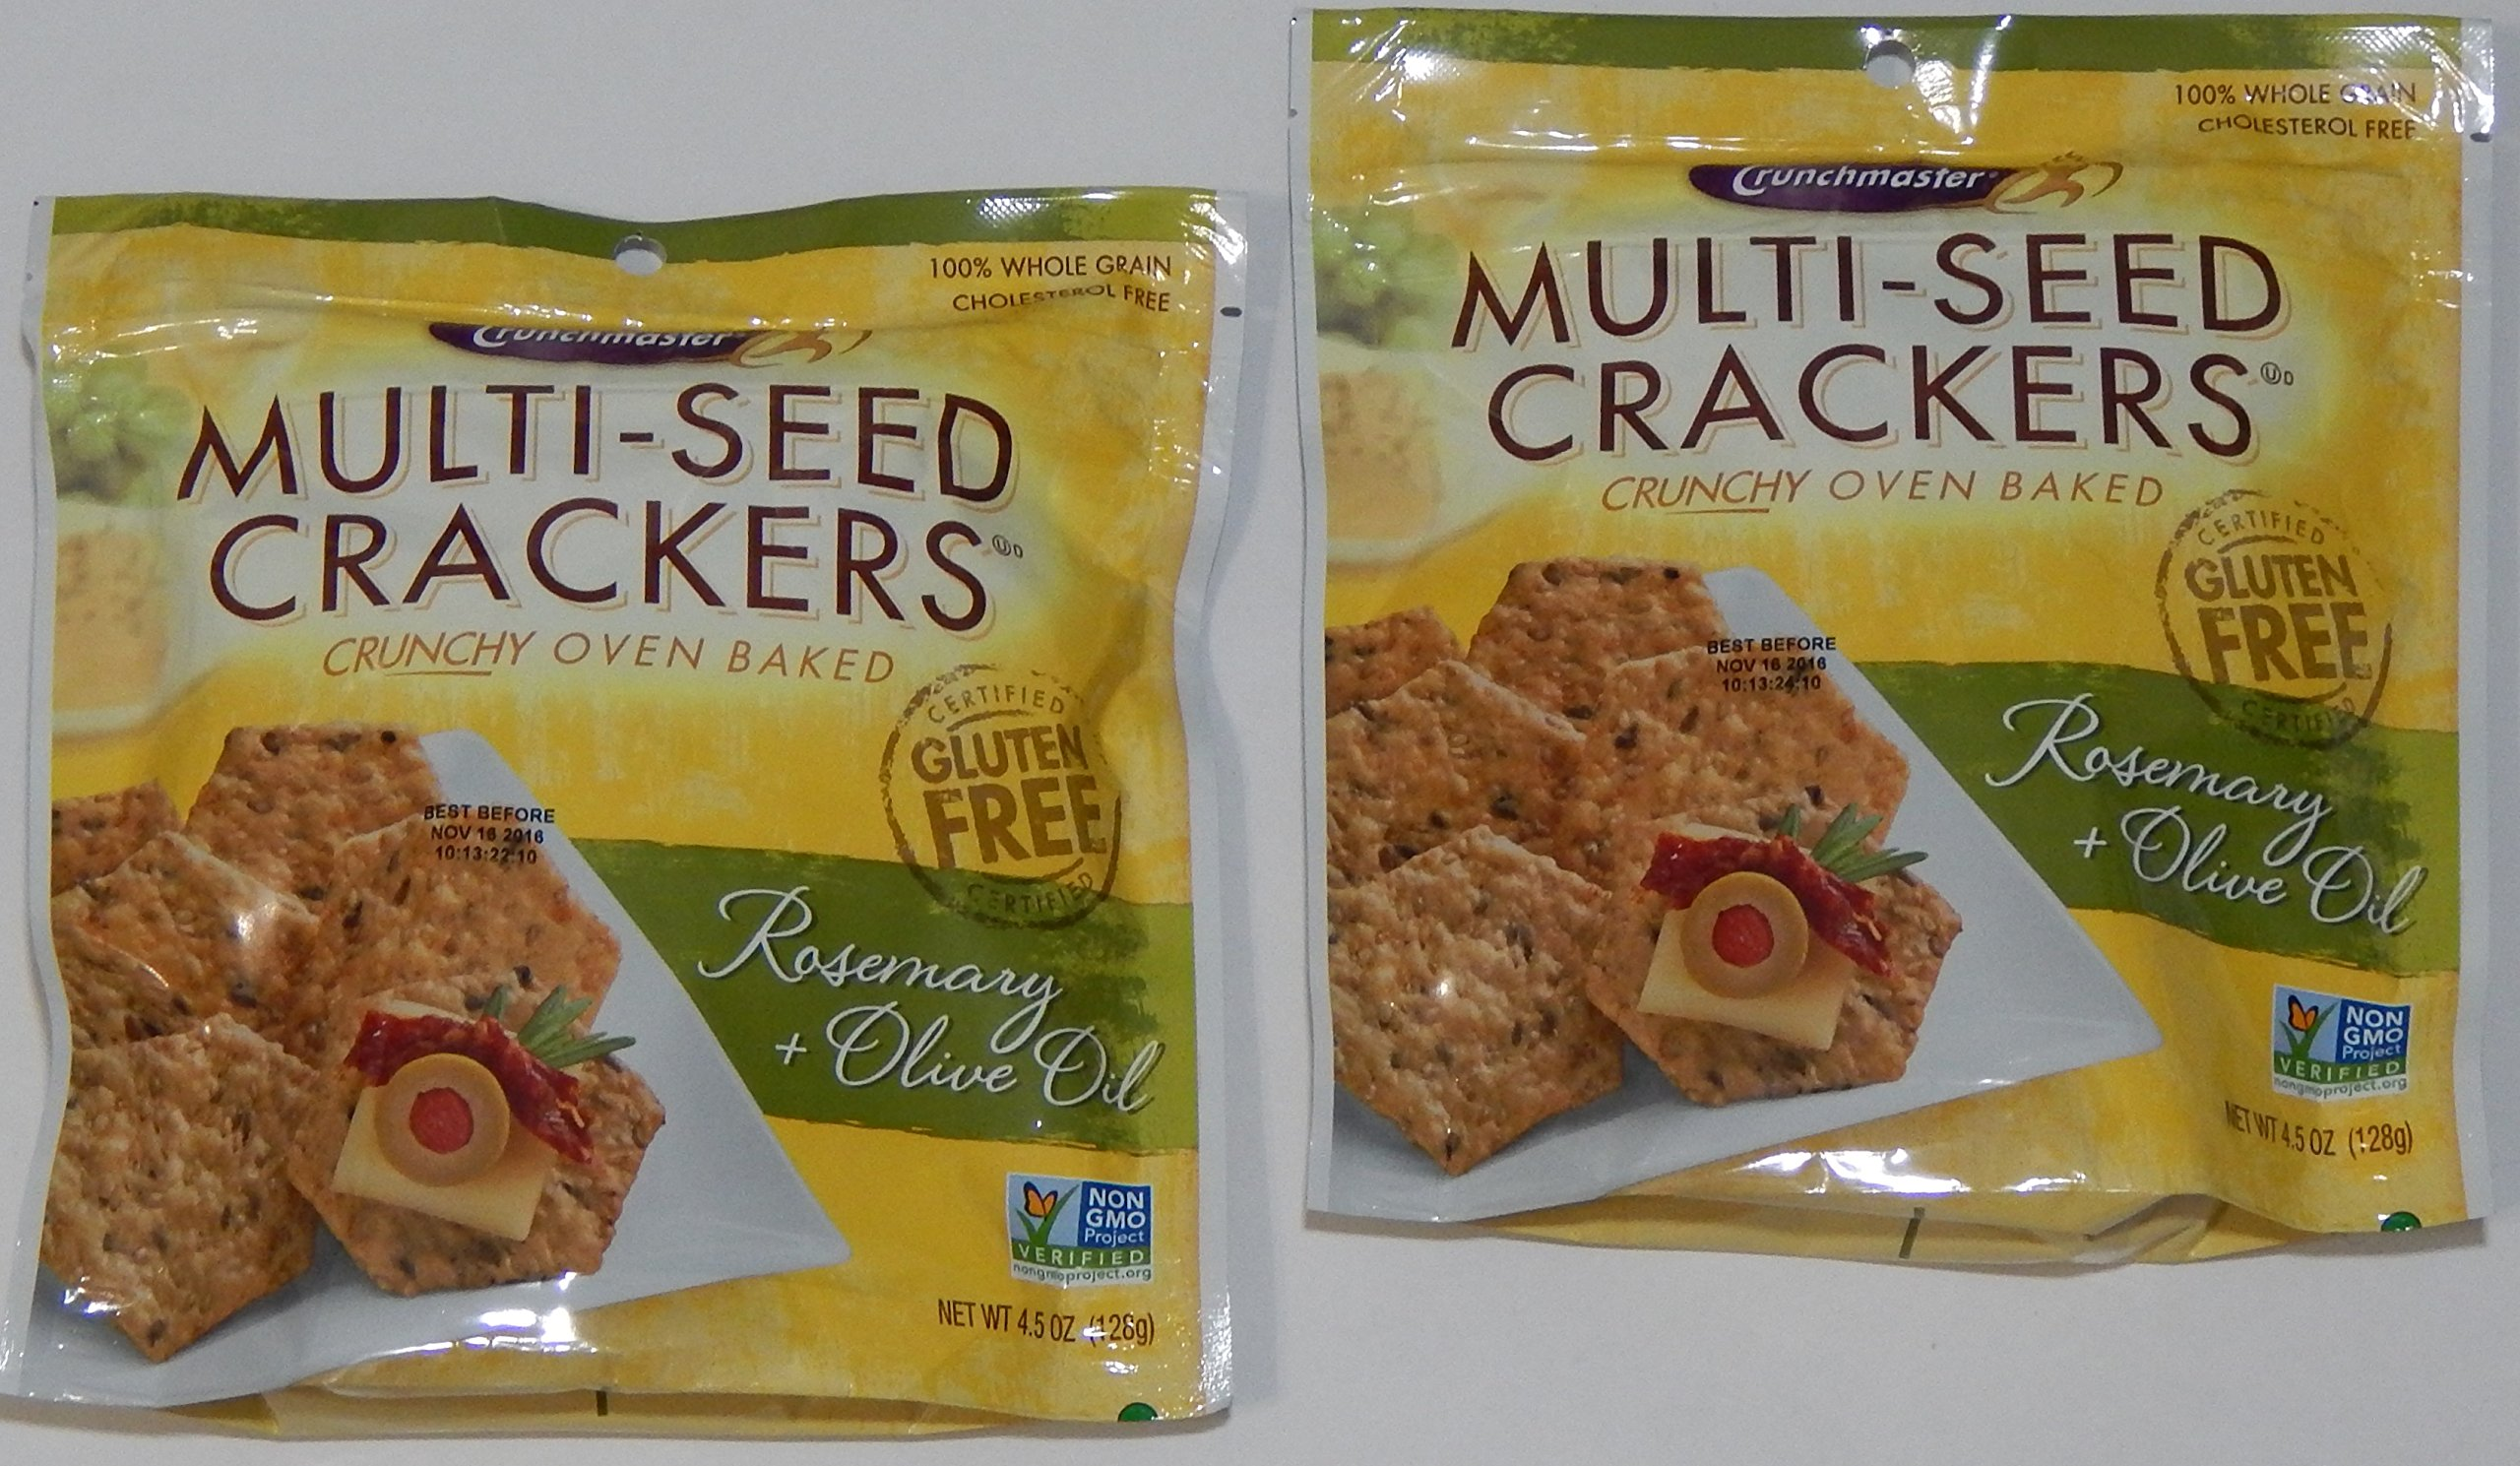 Crunchmaster Multi-Seed Crackers, Rosemary & Olive Oil, 100% Whole Grain Non-GMO, 4.5 Oz. (Pack of 2)